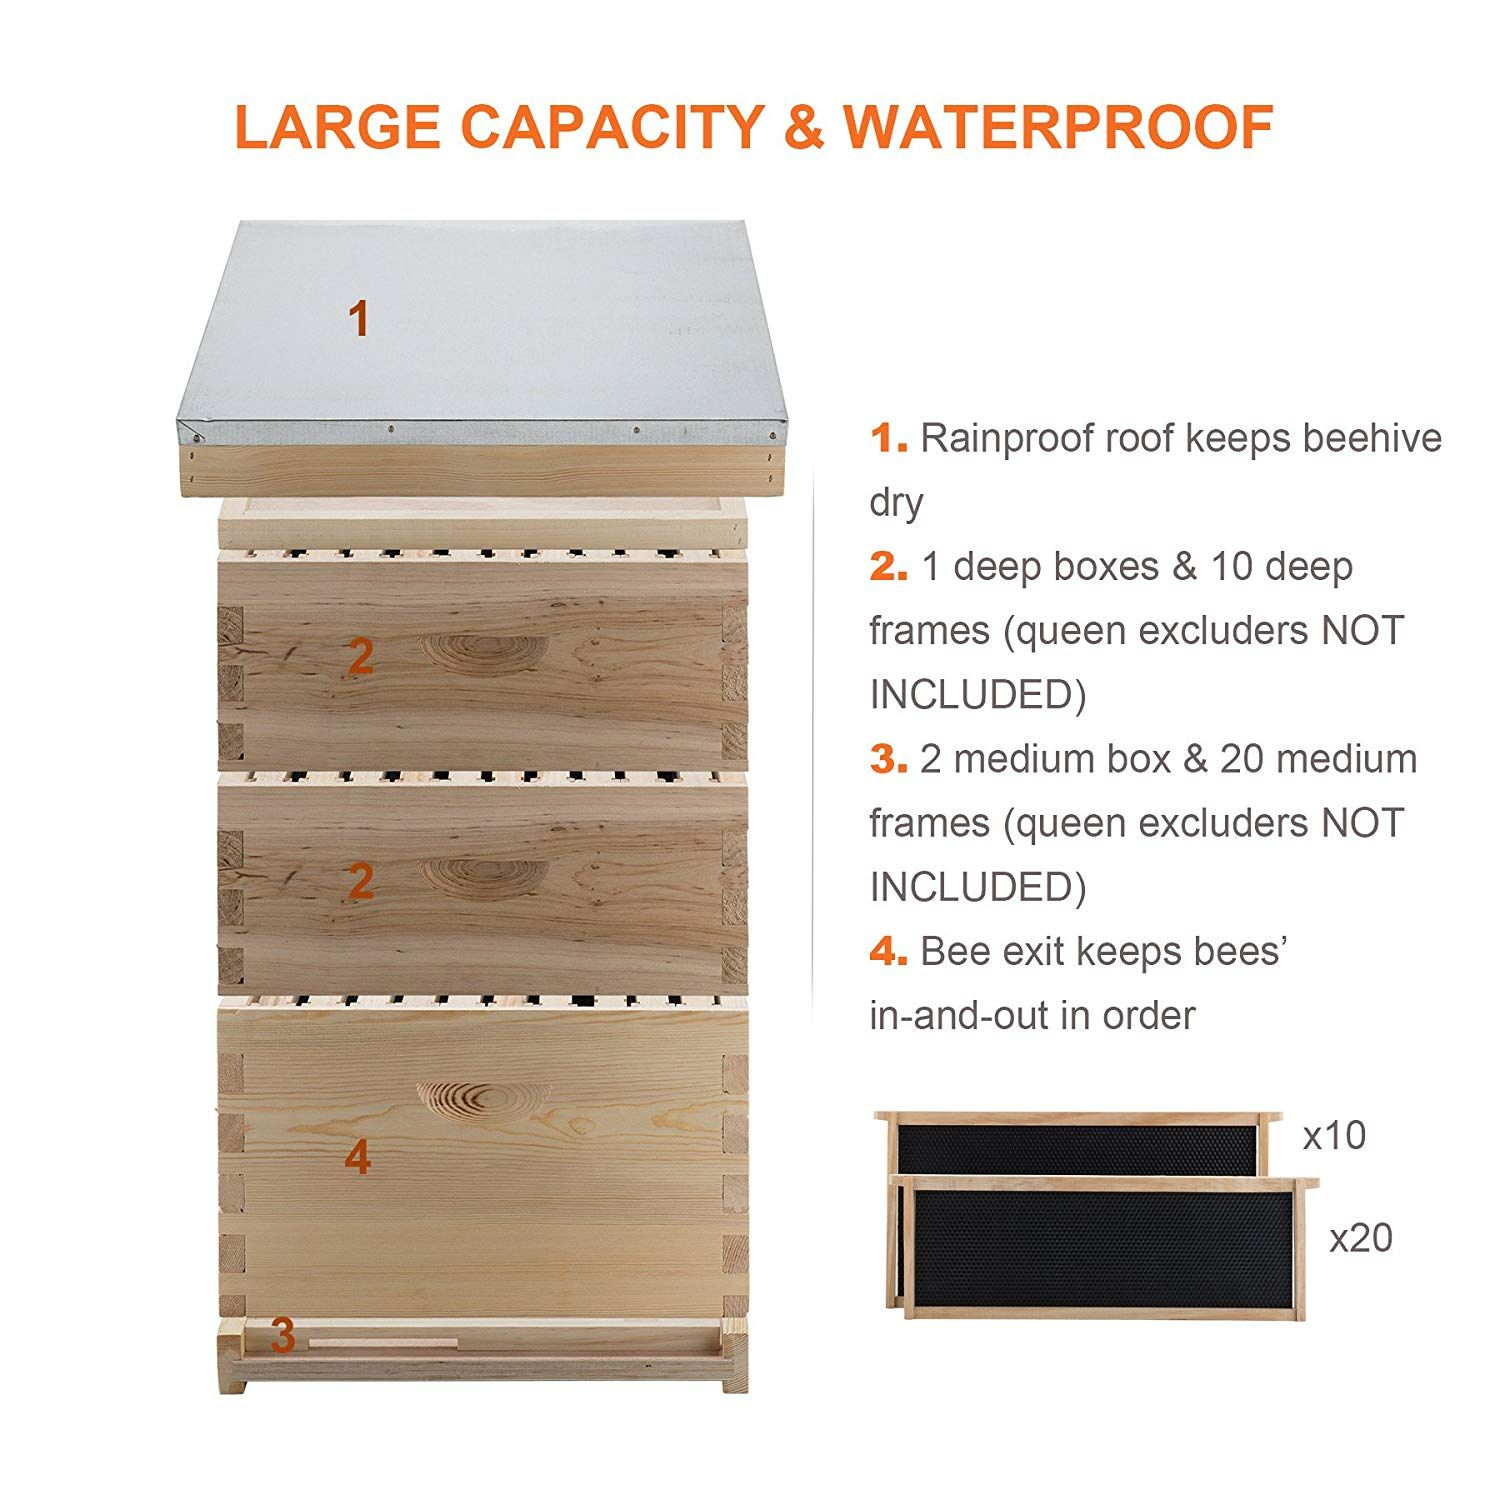 Queen Bee Excluder For 10 Frame Langstroth /& Automatic Honey Flow System